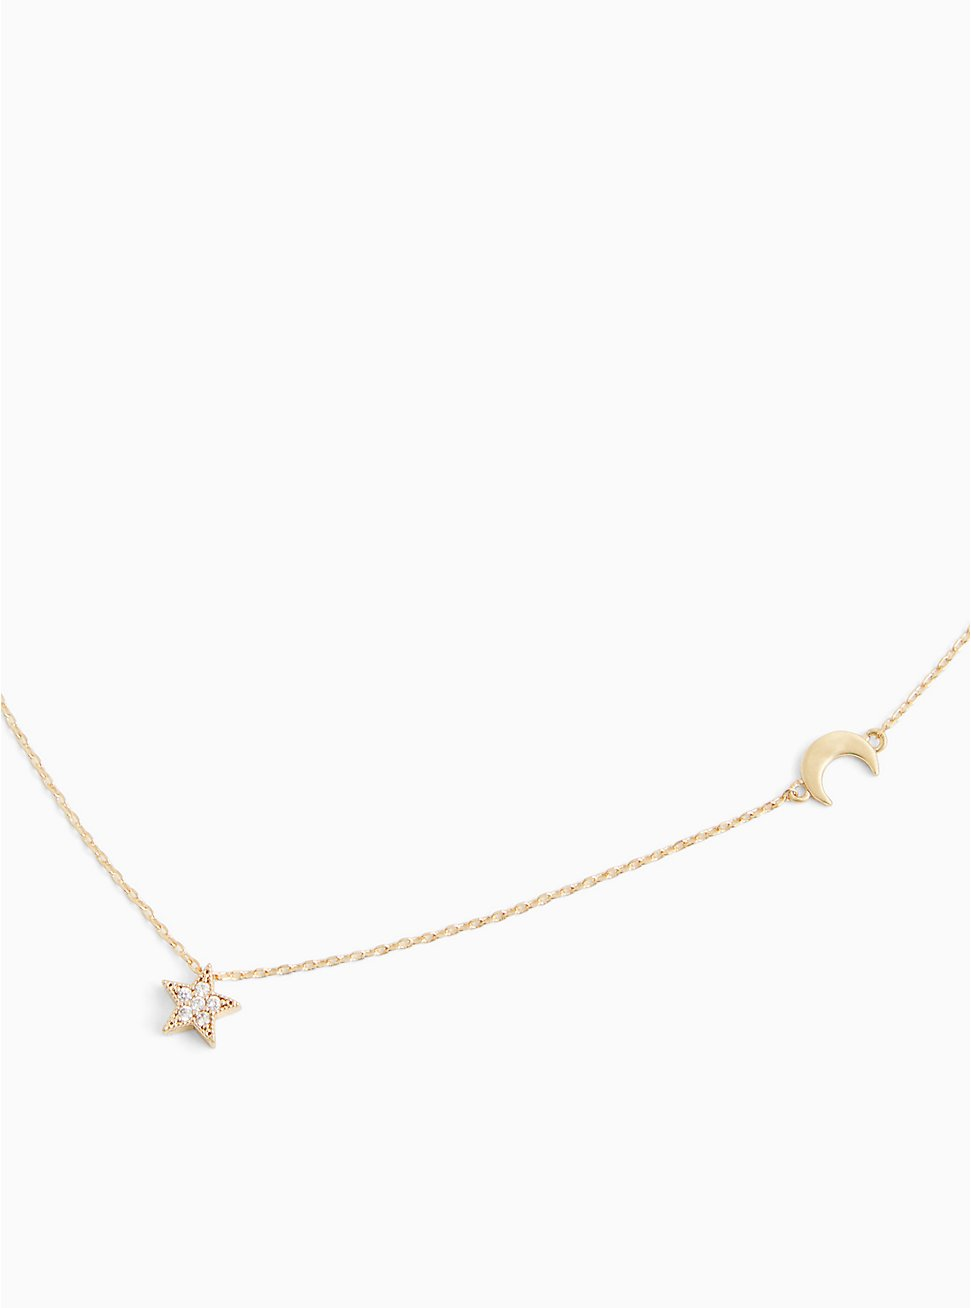 Plus Size Gold-Tone Moon & Rhinestone Star Delicate Necklace, , hi-res